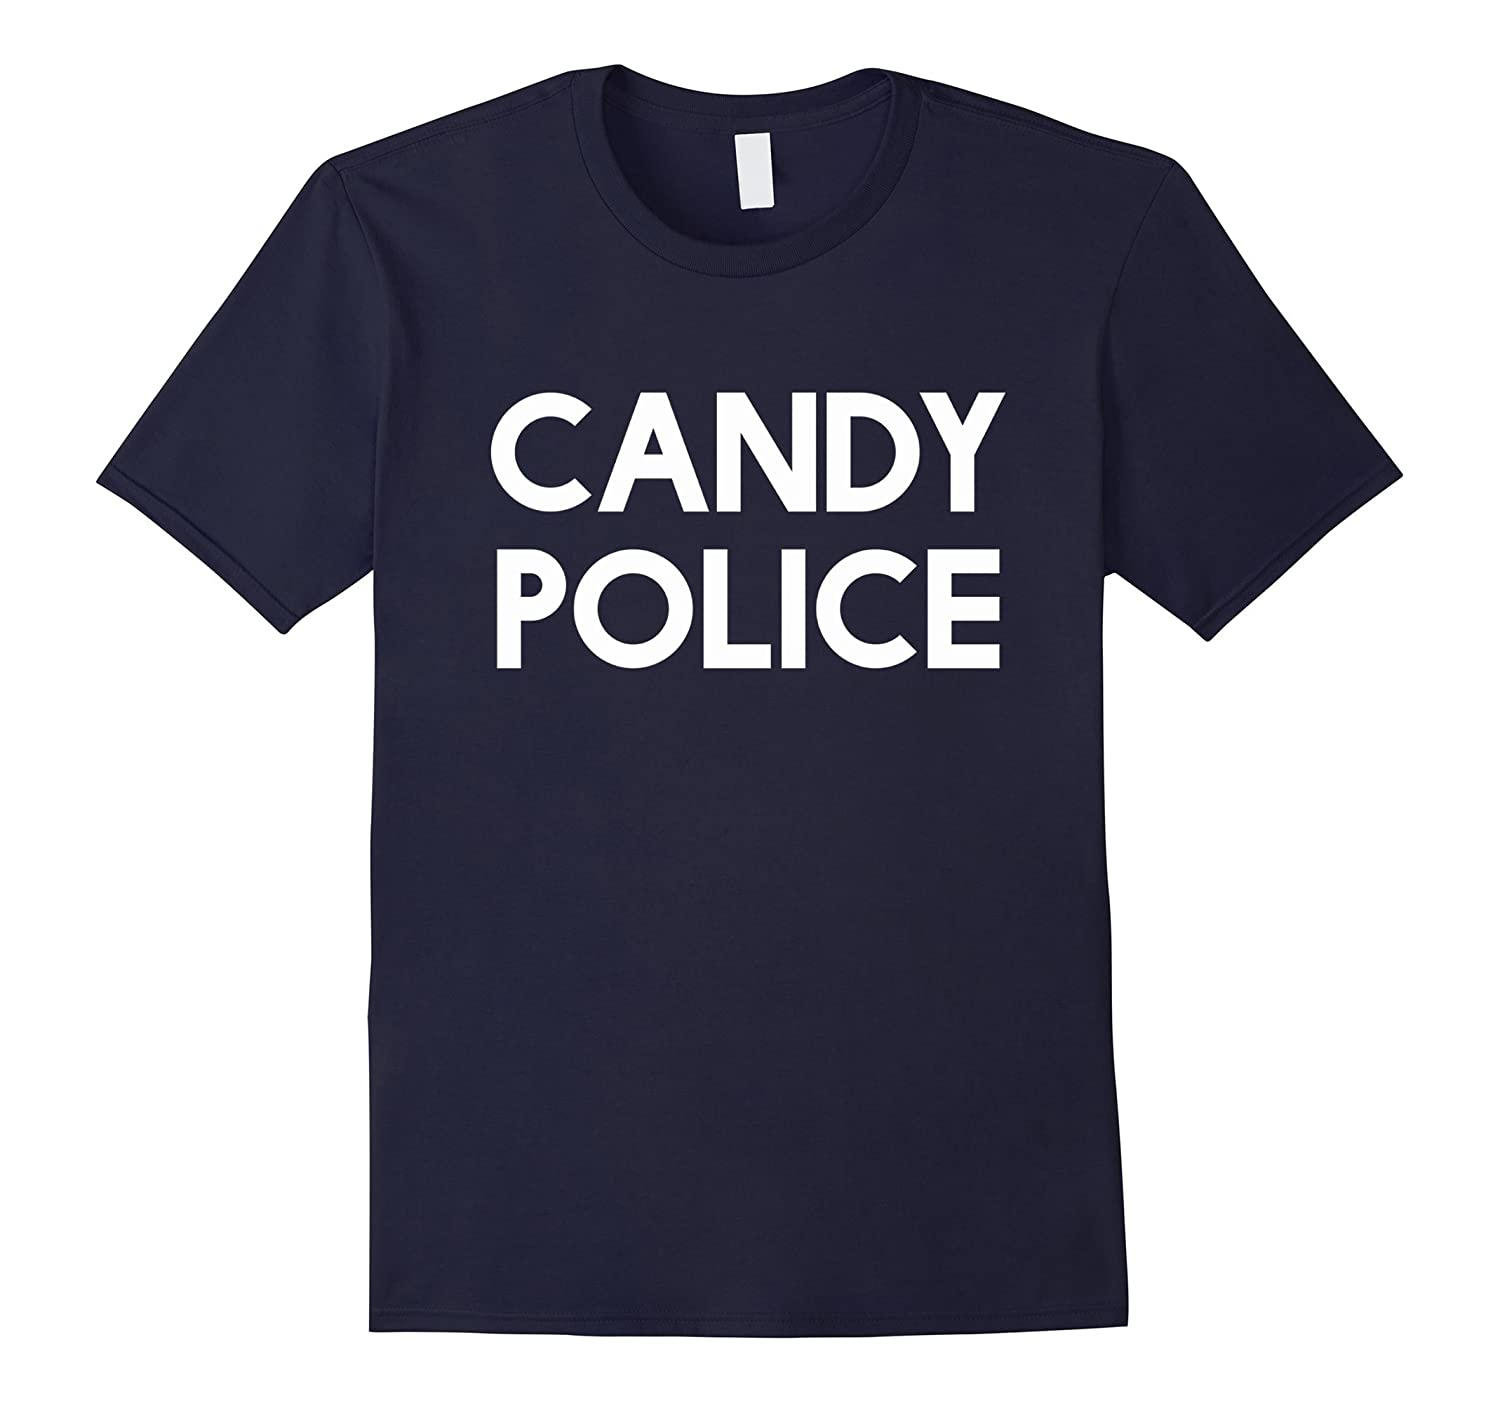 Candy Police Funny Shirt Mom or Dad - Halloween Costume Tee-T-Shirt